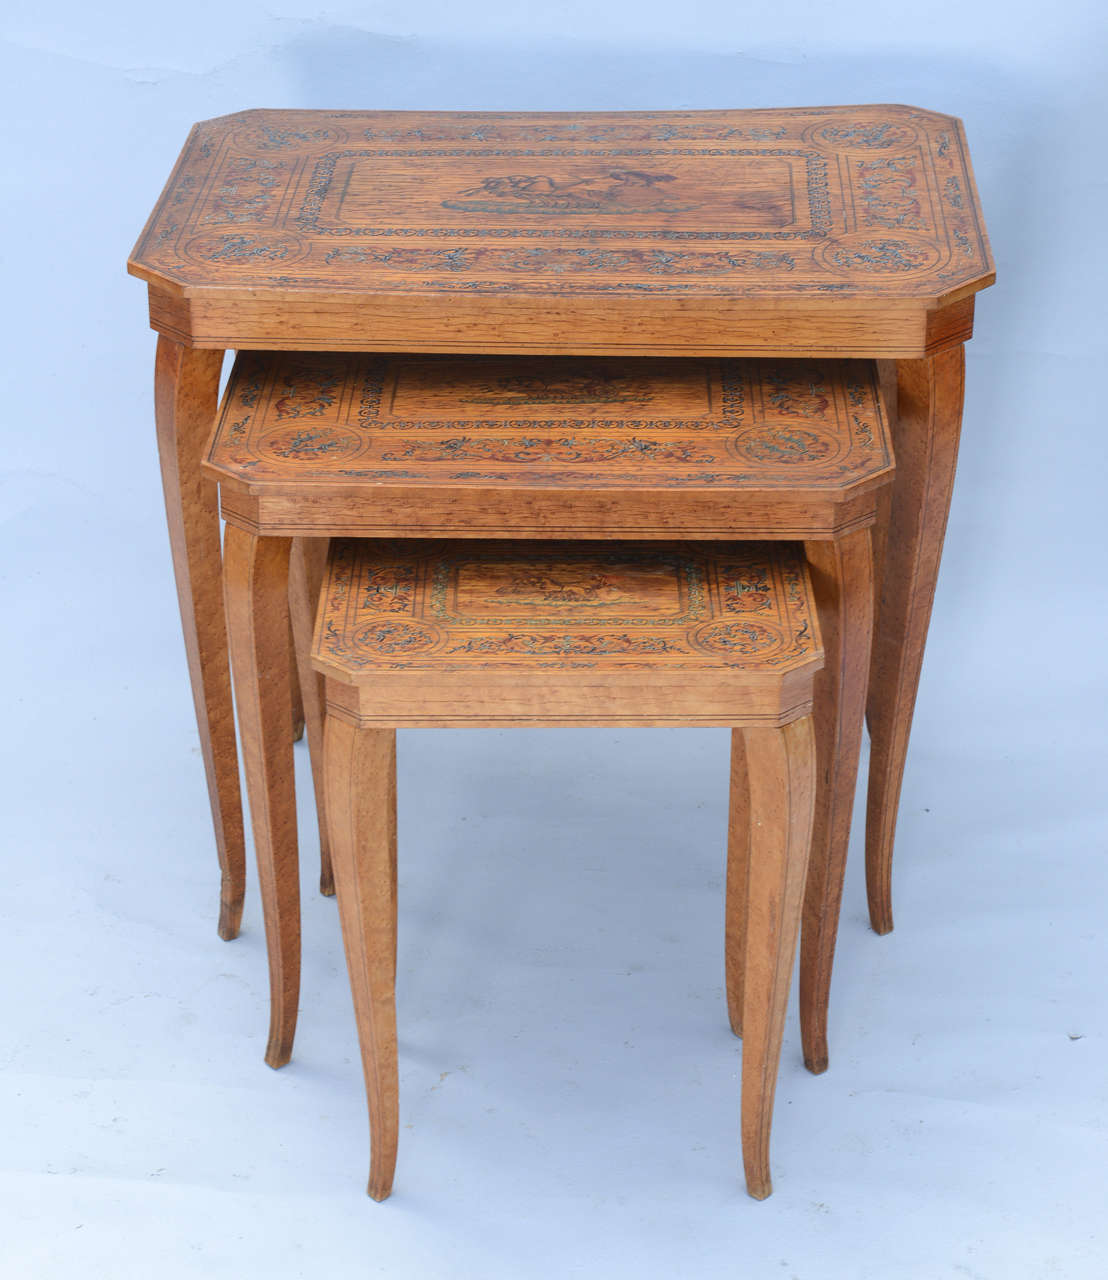 Set of three nesting tables, of wood, each rectangular shaped with canted corners, etched with leafy, scrolling designs hightlighted with delicate handpainting, centered with horse drawn chariot and rider.  Stock ID: D6738